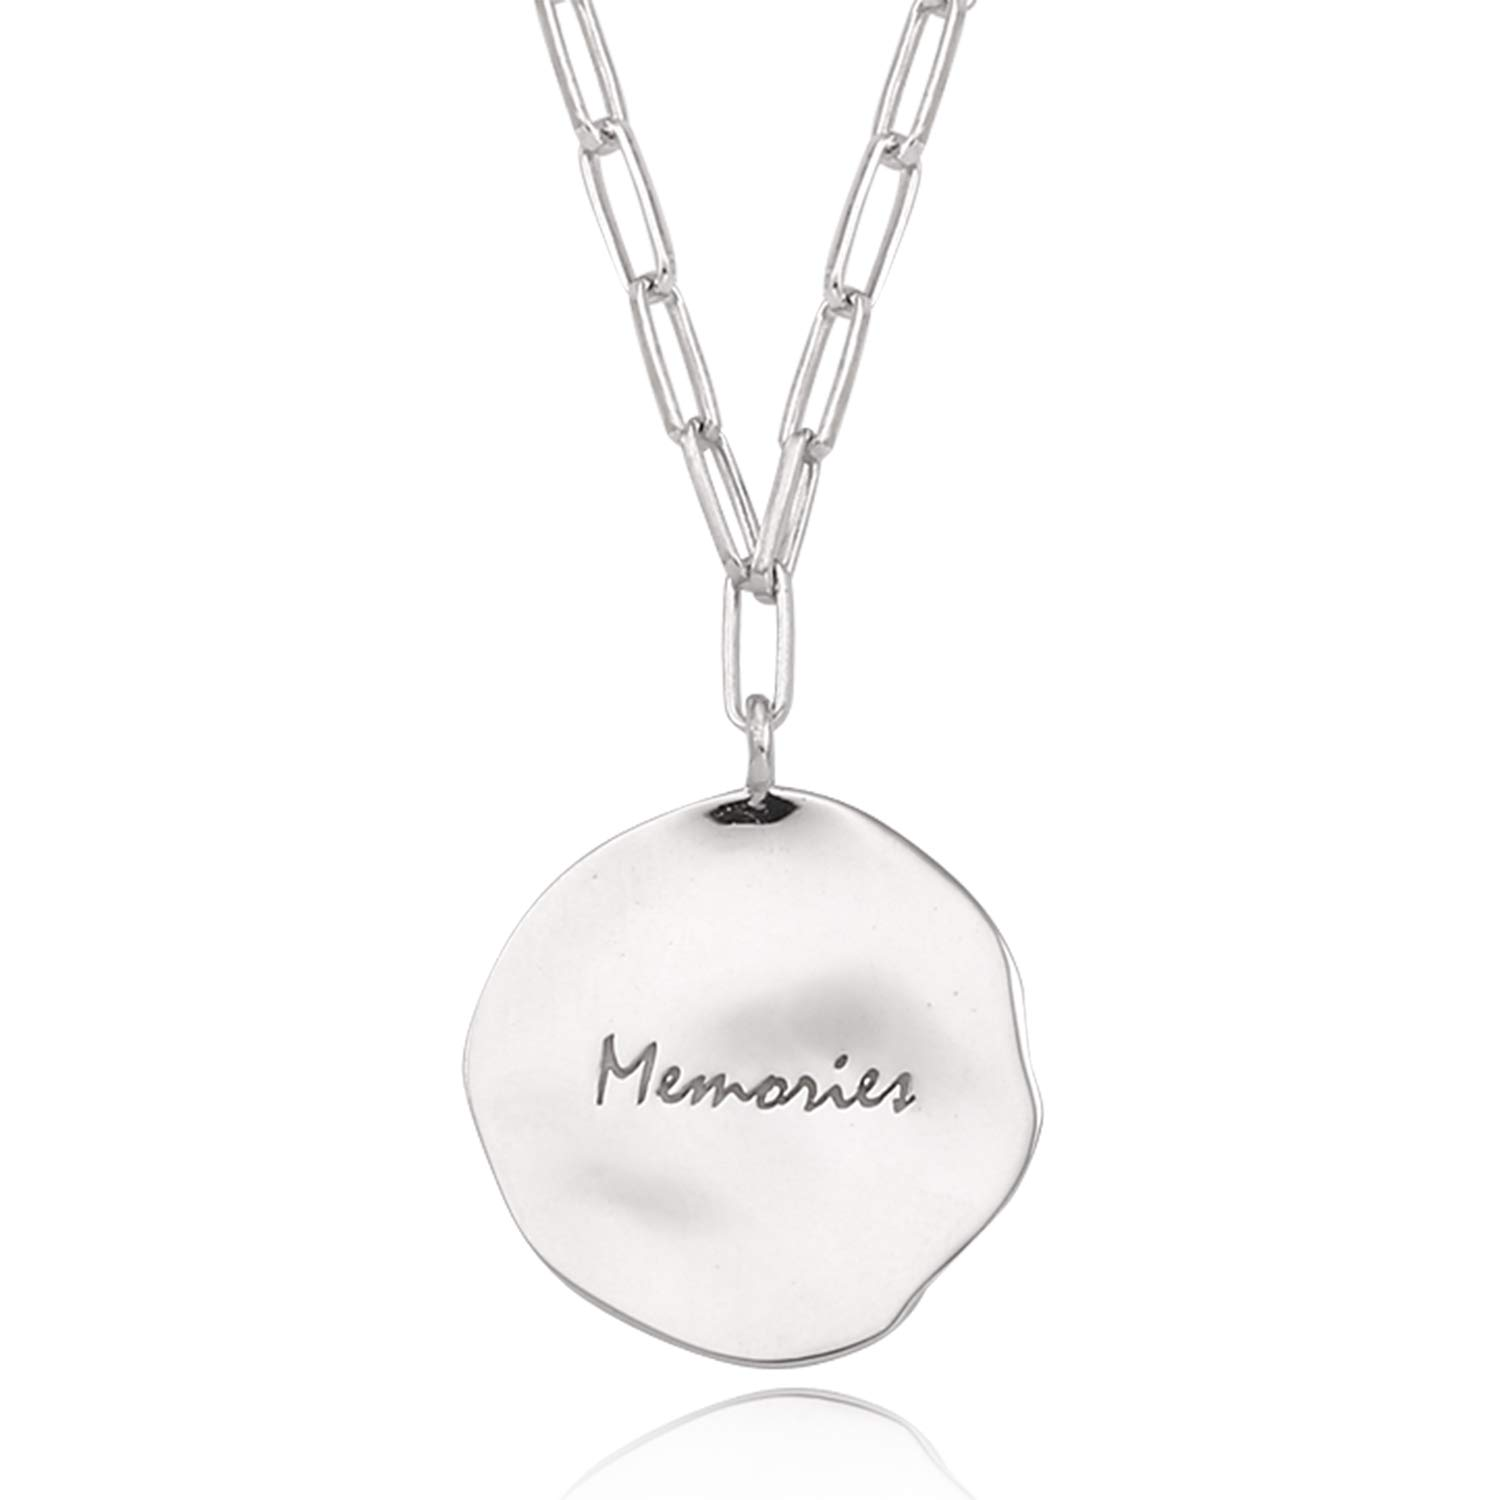 J.RAHEL 925 Sterling Silver Irregular Wrinkly Round Disc Engraved Pendant Link Chain Necklace for Women